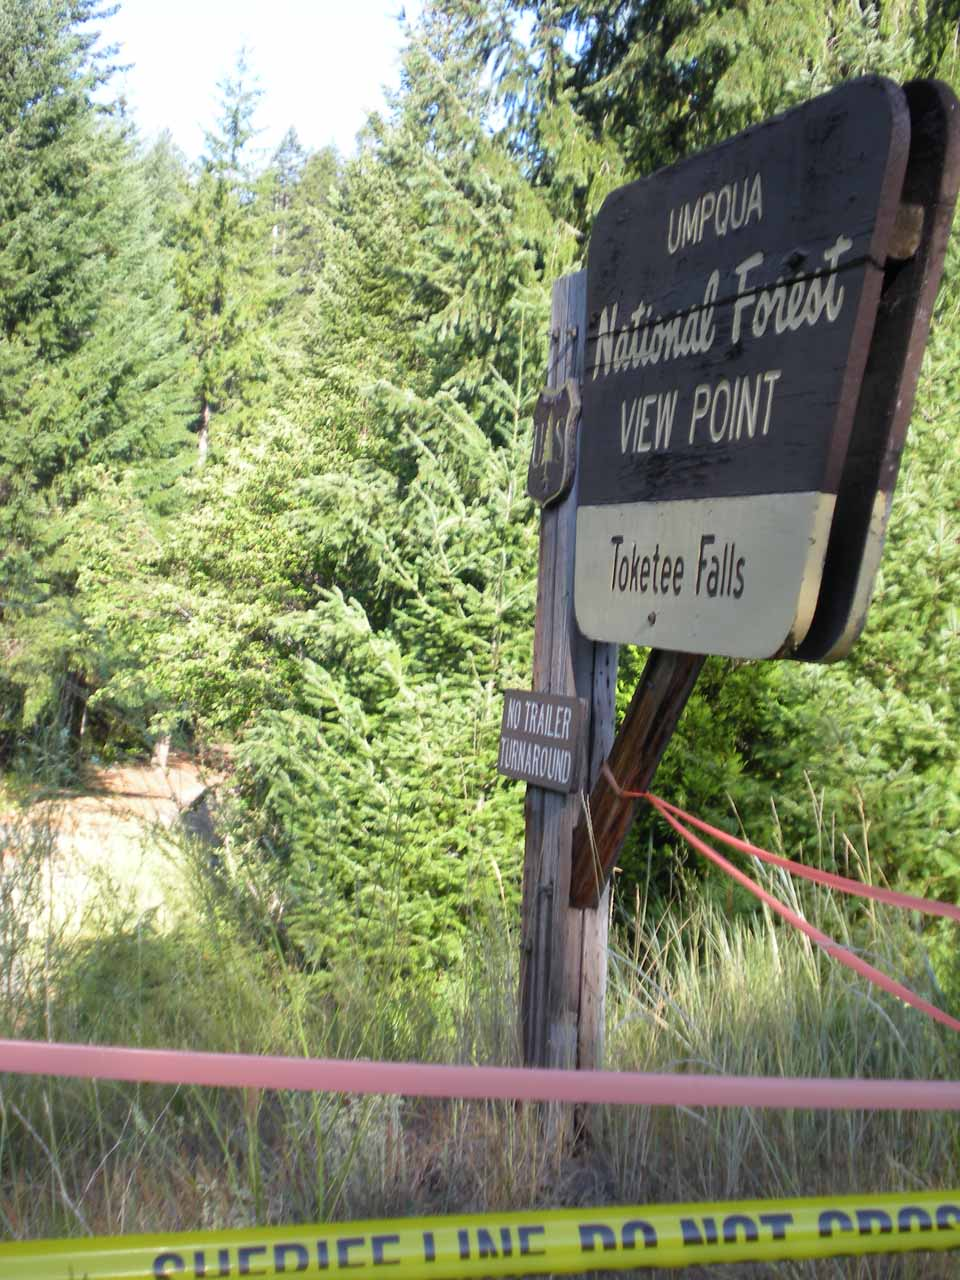 Police tape and other things strung across the trail to prevent entry